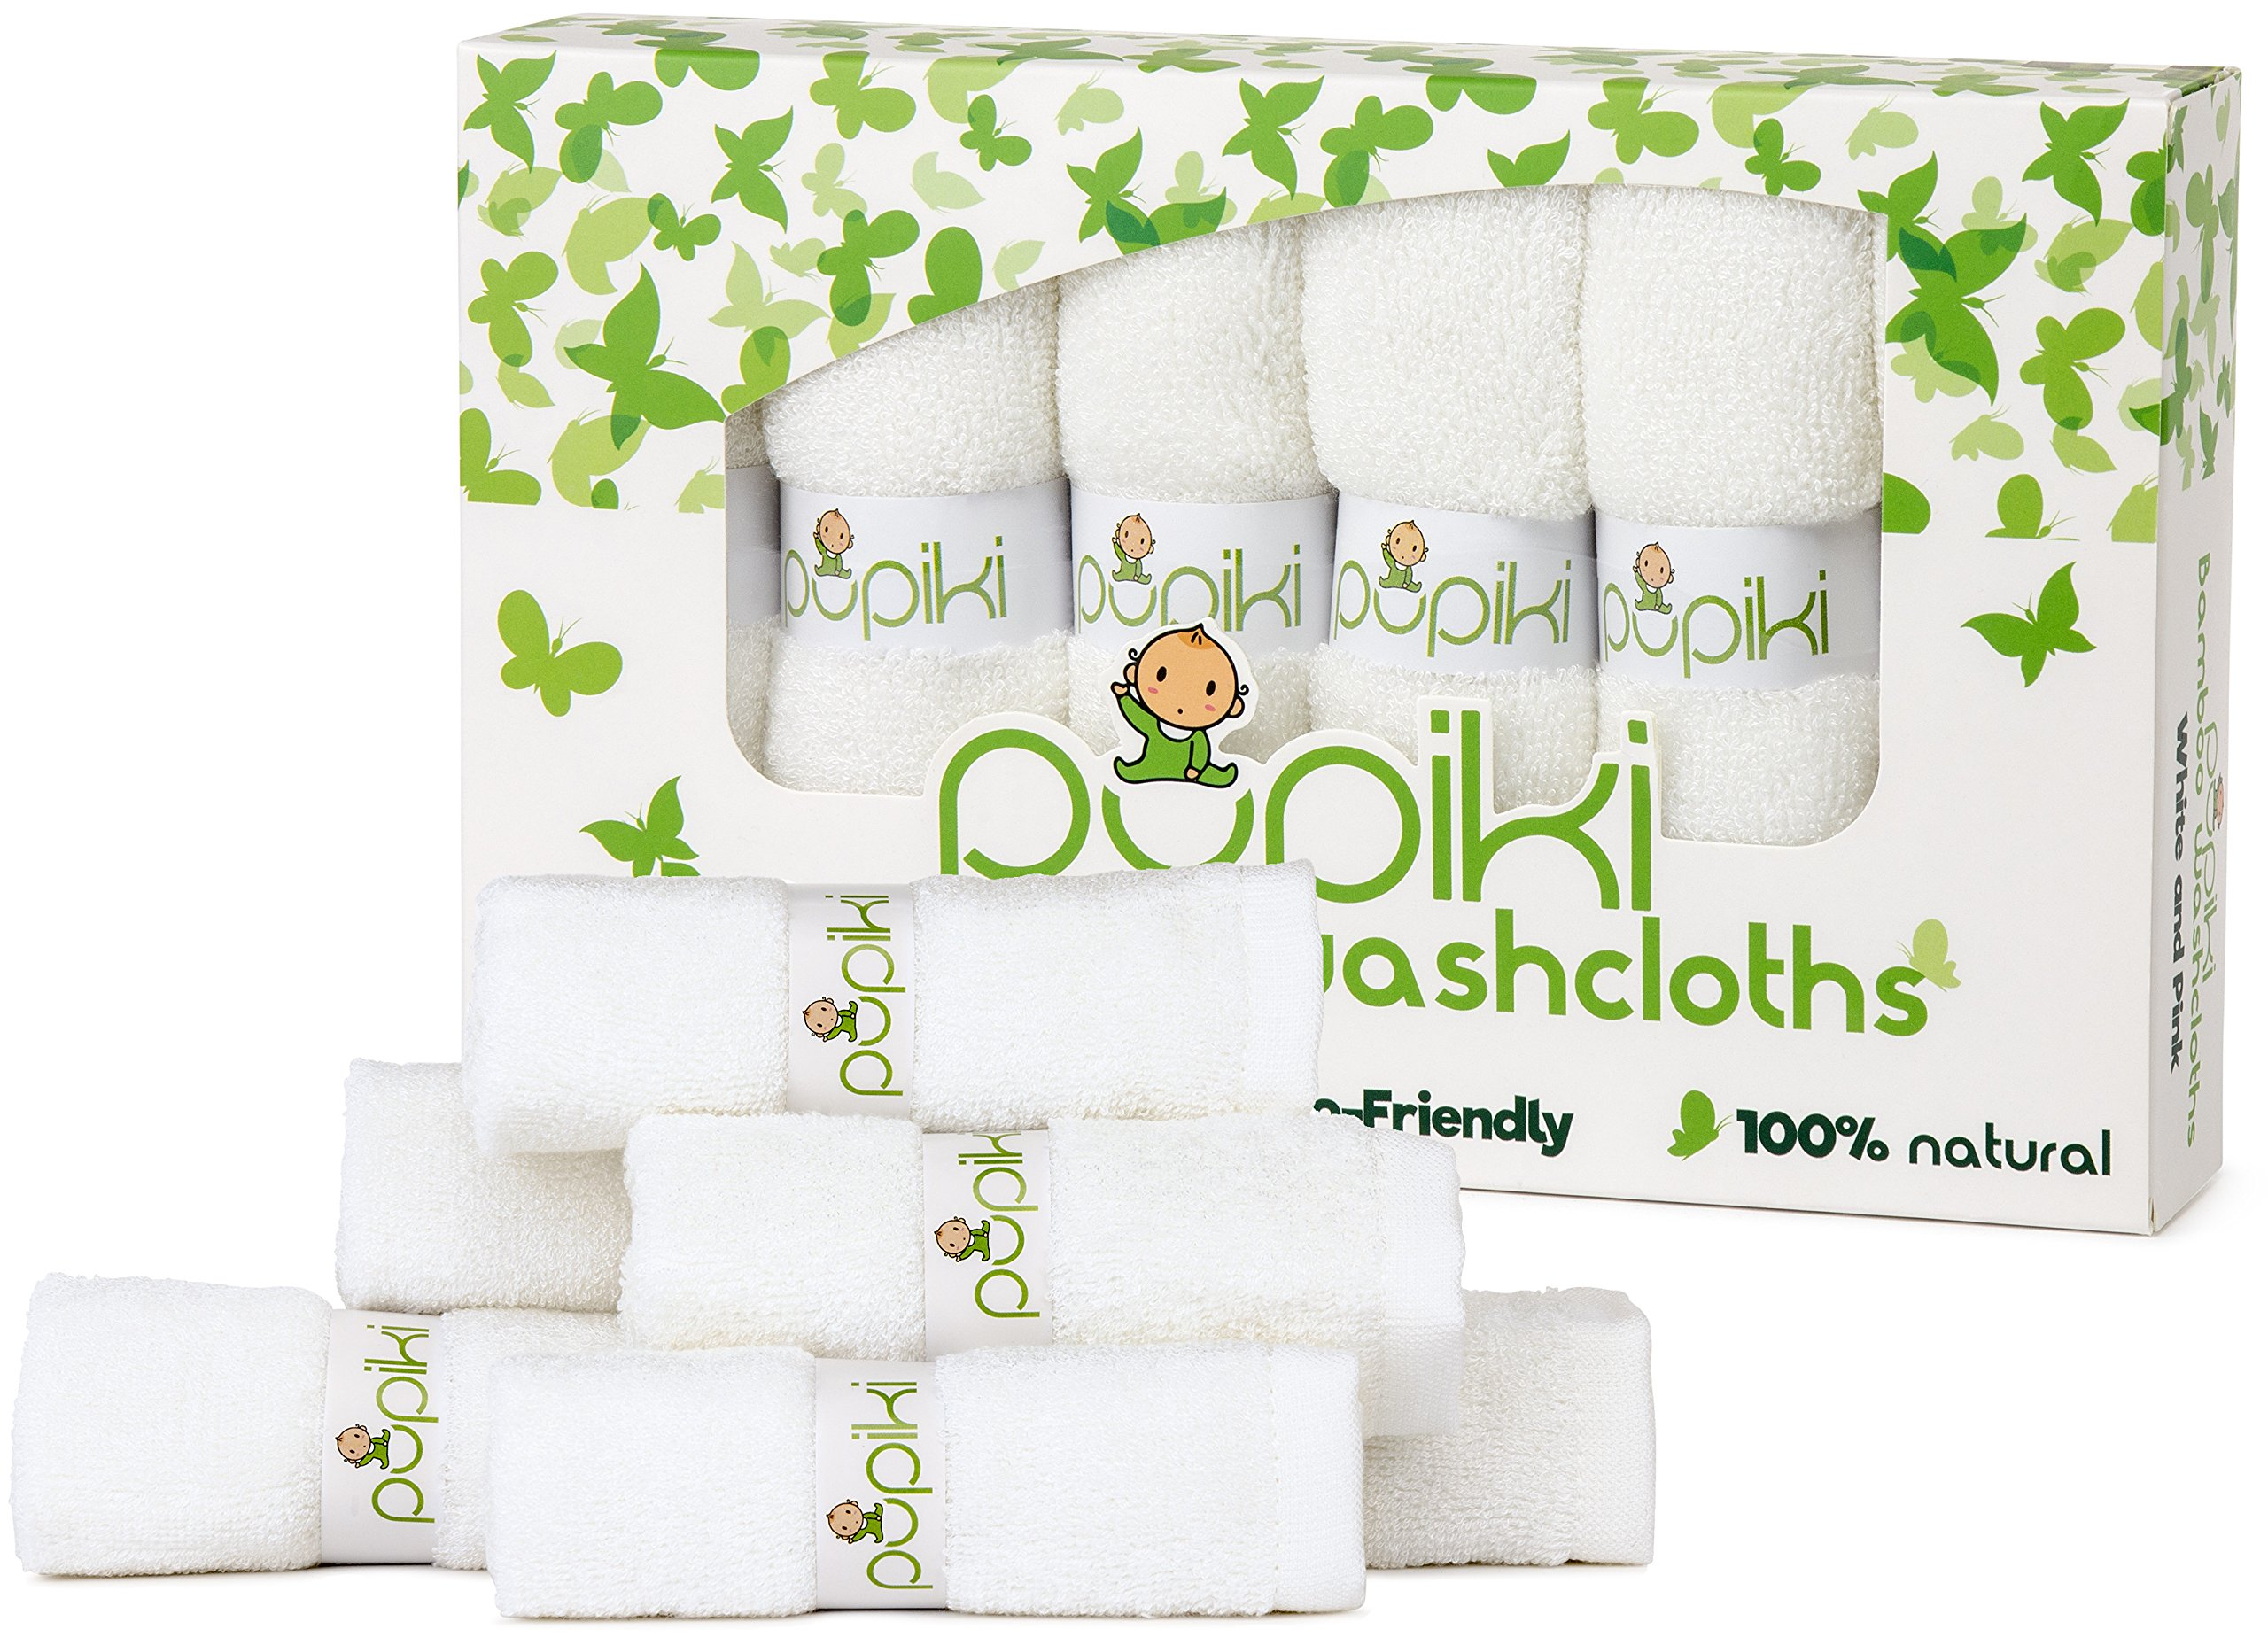 """Premium Pupiki Baby Washcloths: 6 Ultra-Soft 100% Organic Bamboo Baby Washcloths + Wash Bag Hypoallergenic Reusable Extra-Absorbent 10""""X10"""" Newborn Towel for Boys & Girls Great Baby Shower Gift White"""